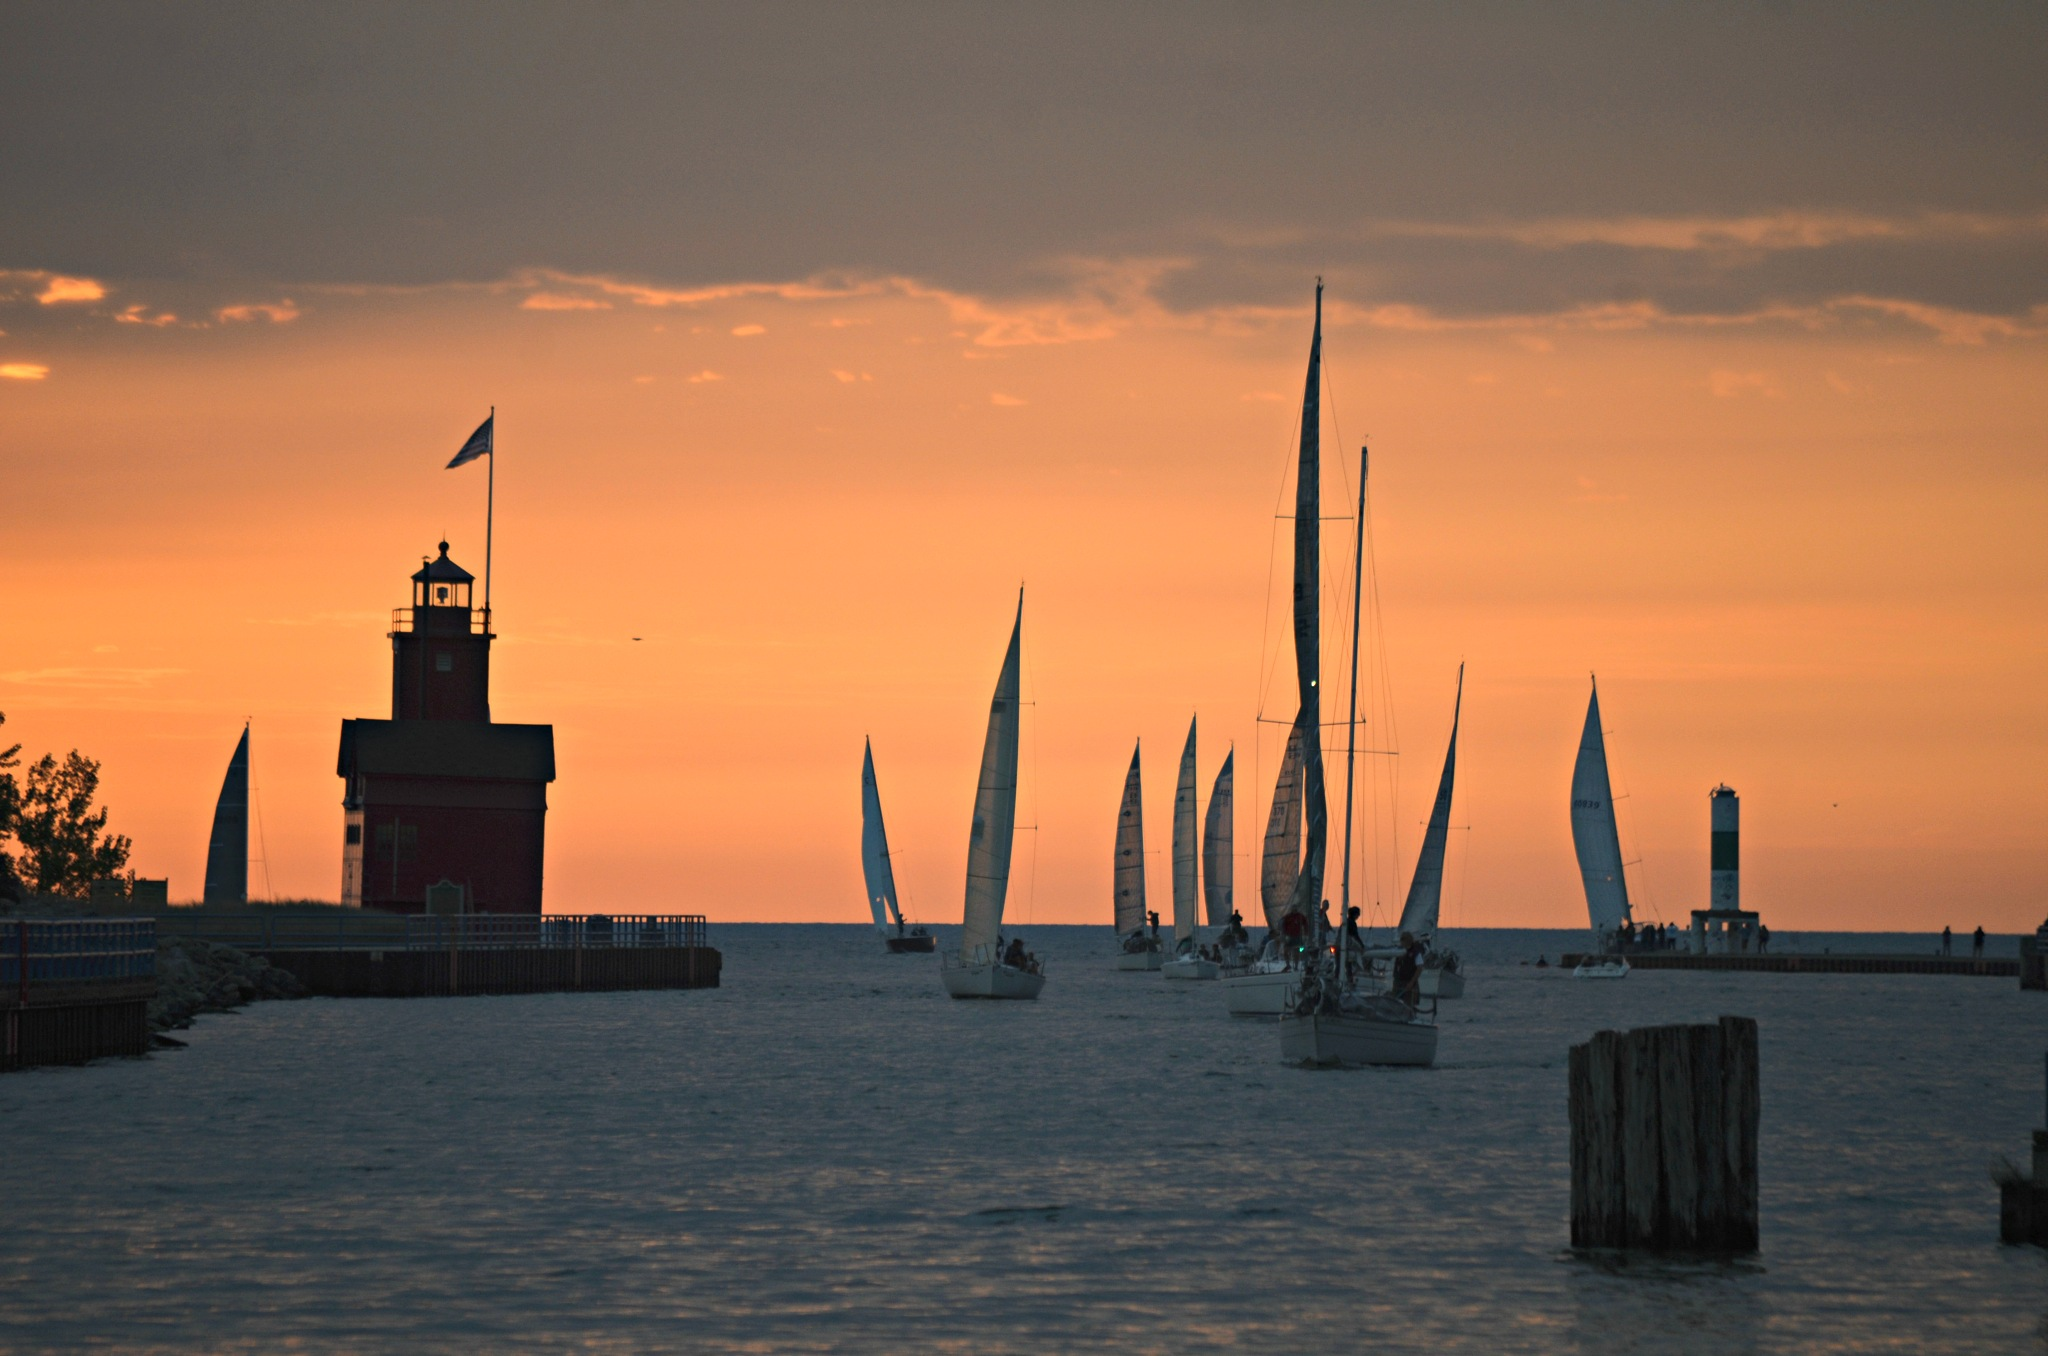 It's For Sail by ScottWardPhotography